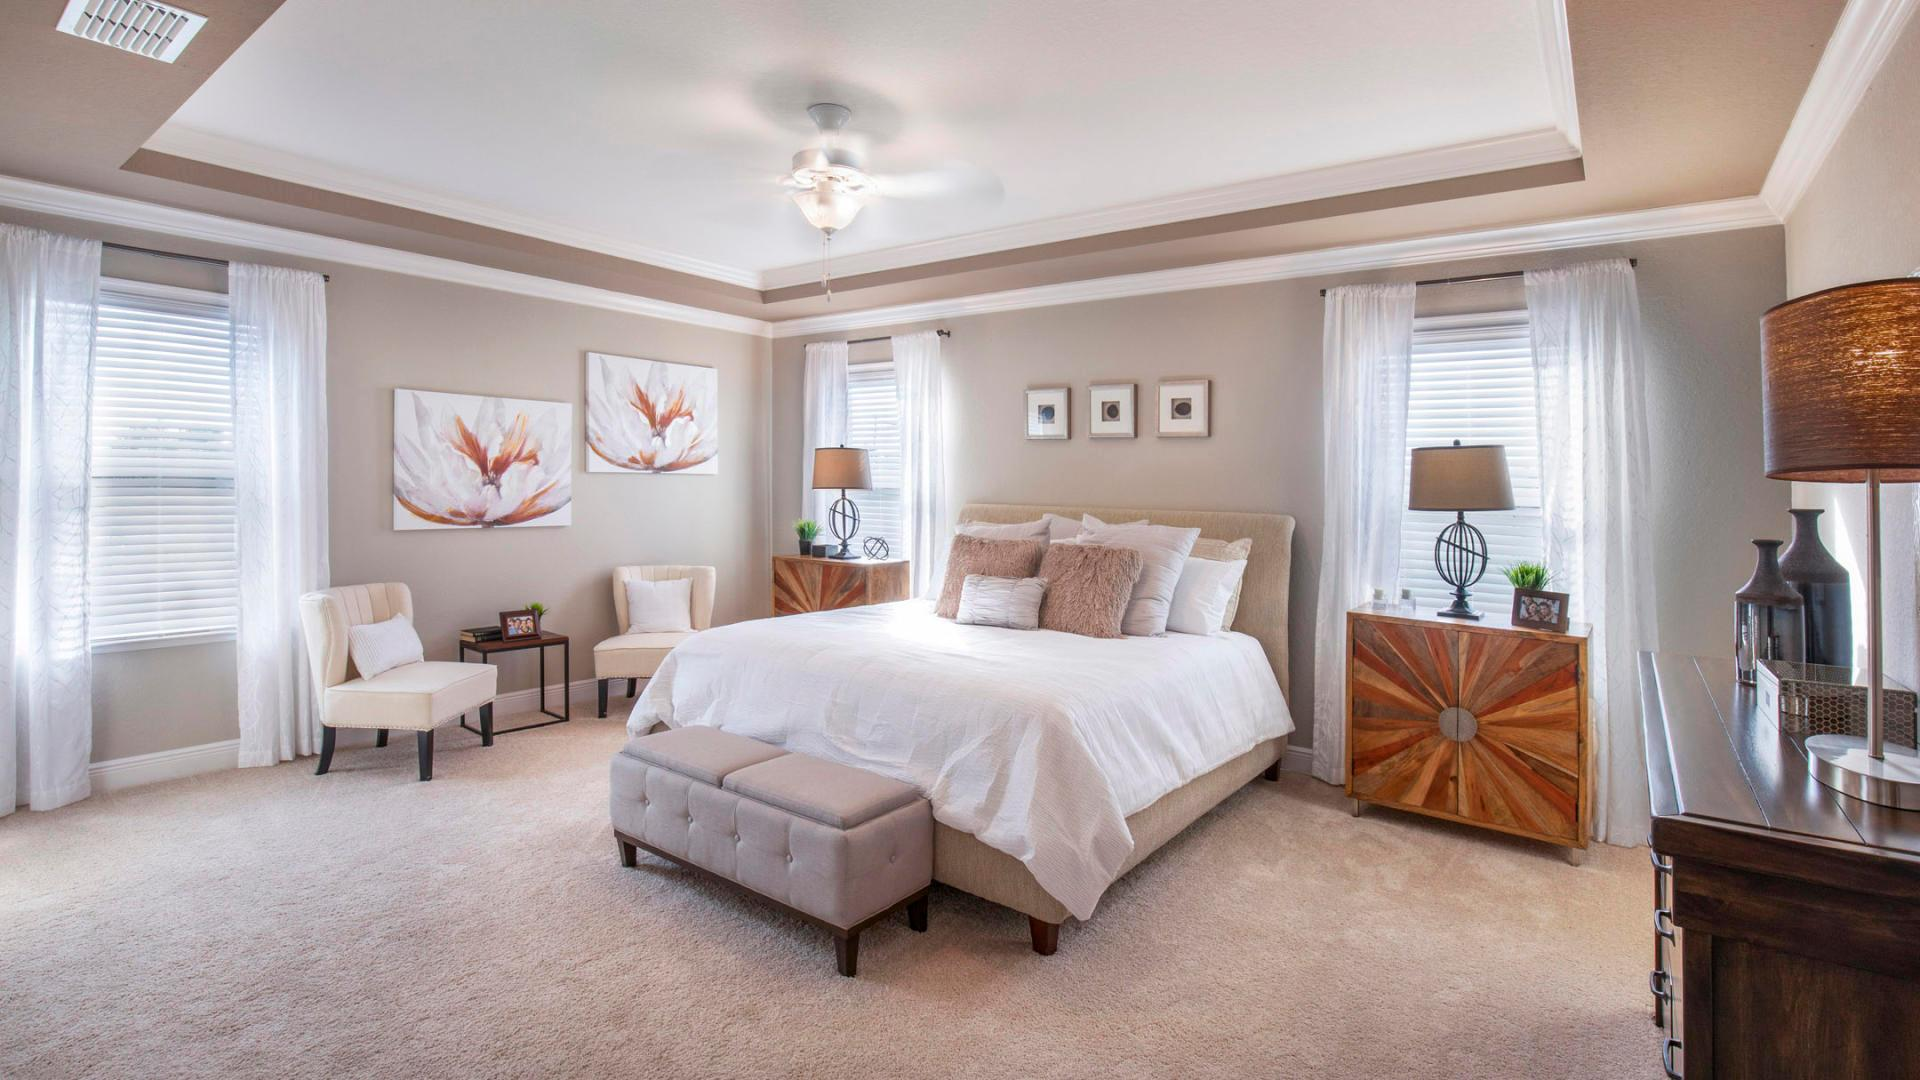 Bedroom featured in the Venice By Maronda Homes in Melbourne, FL